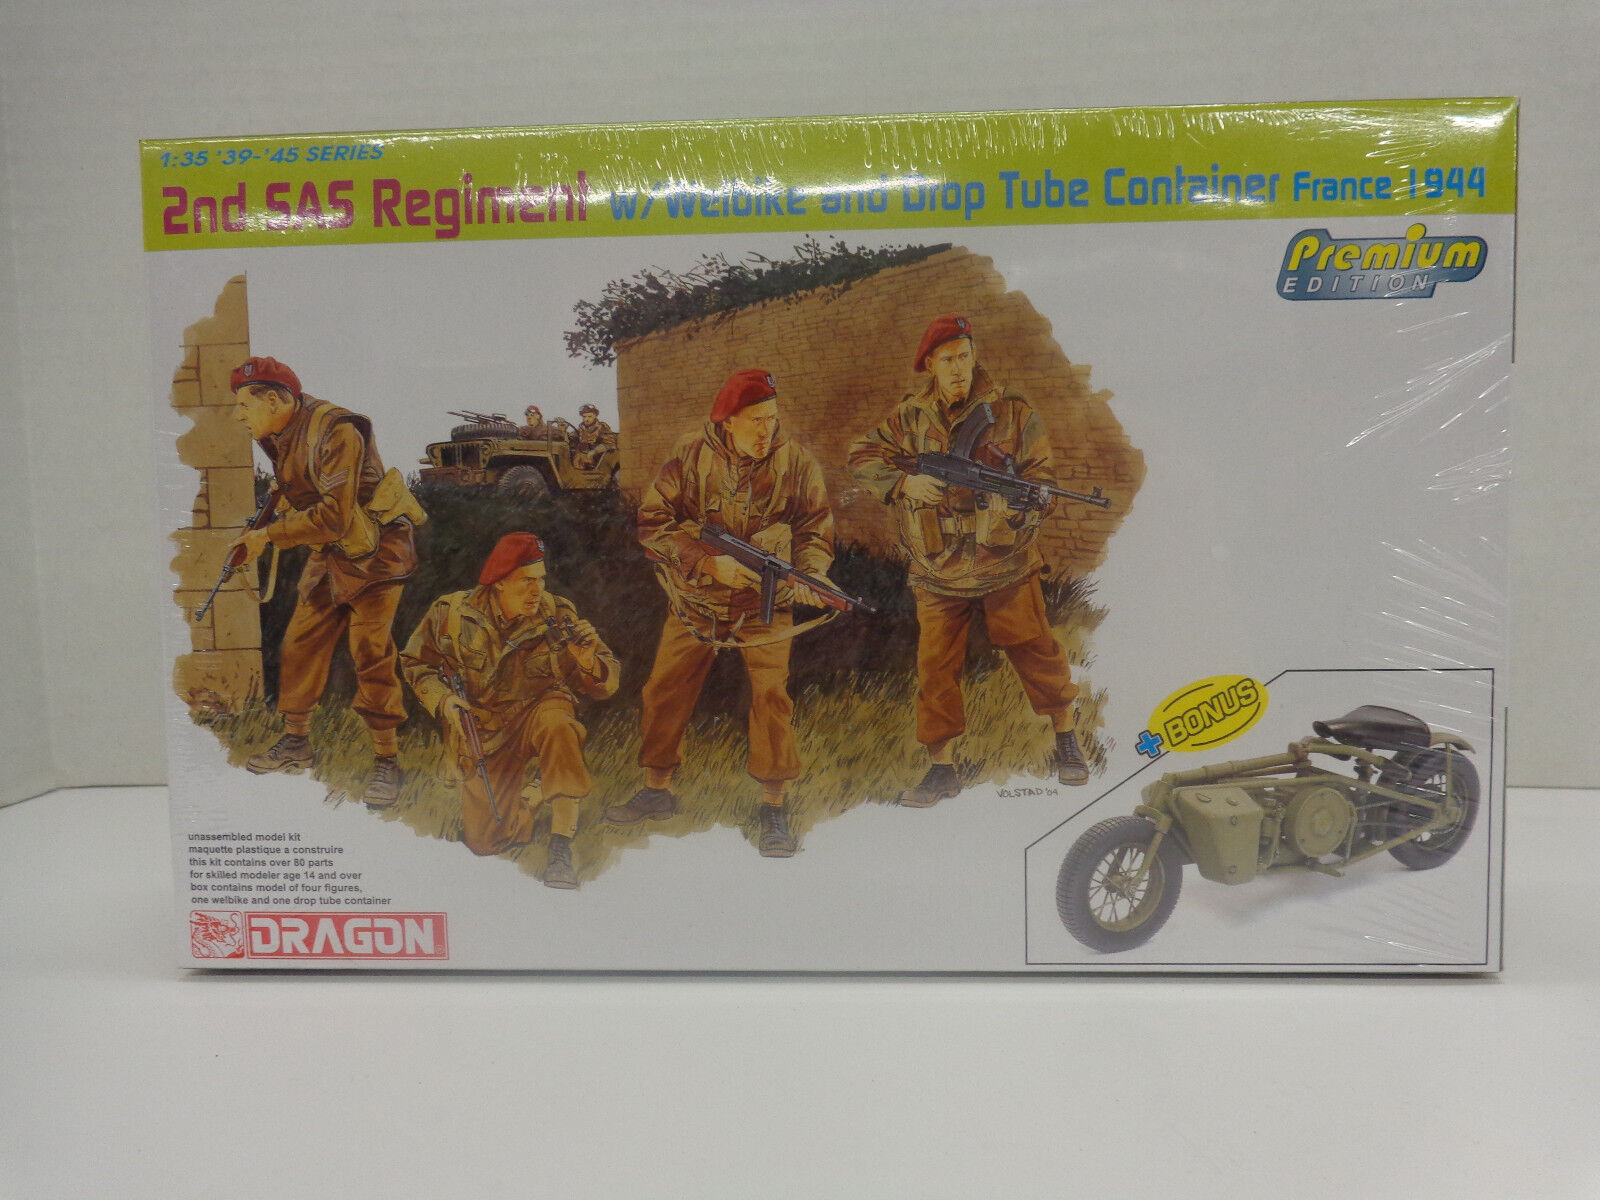 Dragon 1//35 6586 WWII British 2nd SAS Regiment w//Welbike and Drop Tube Container